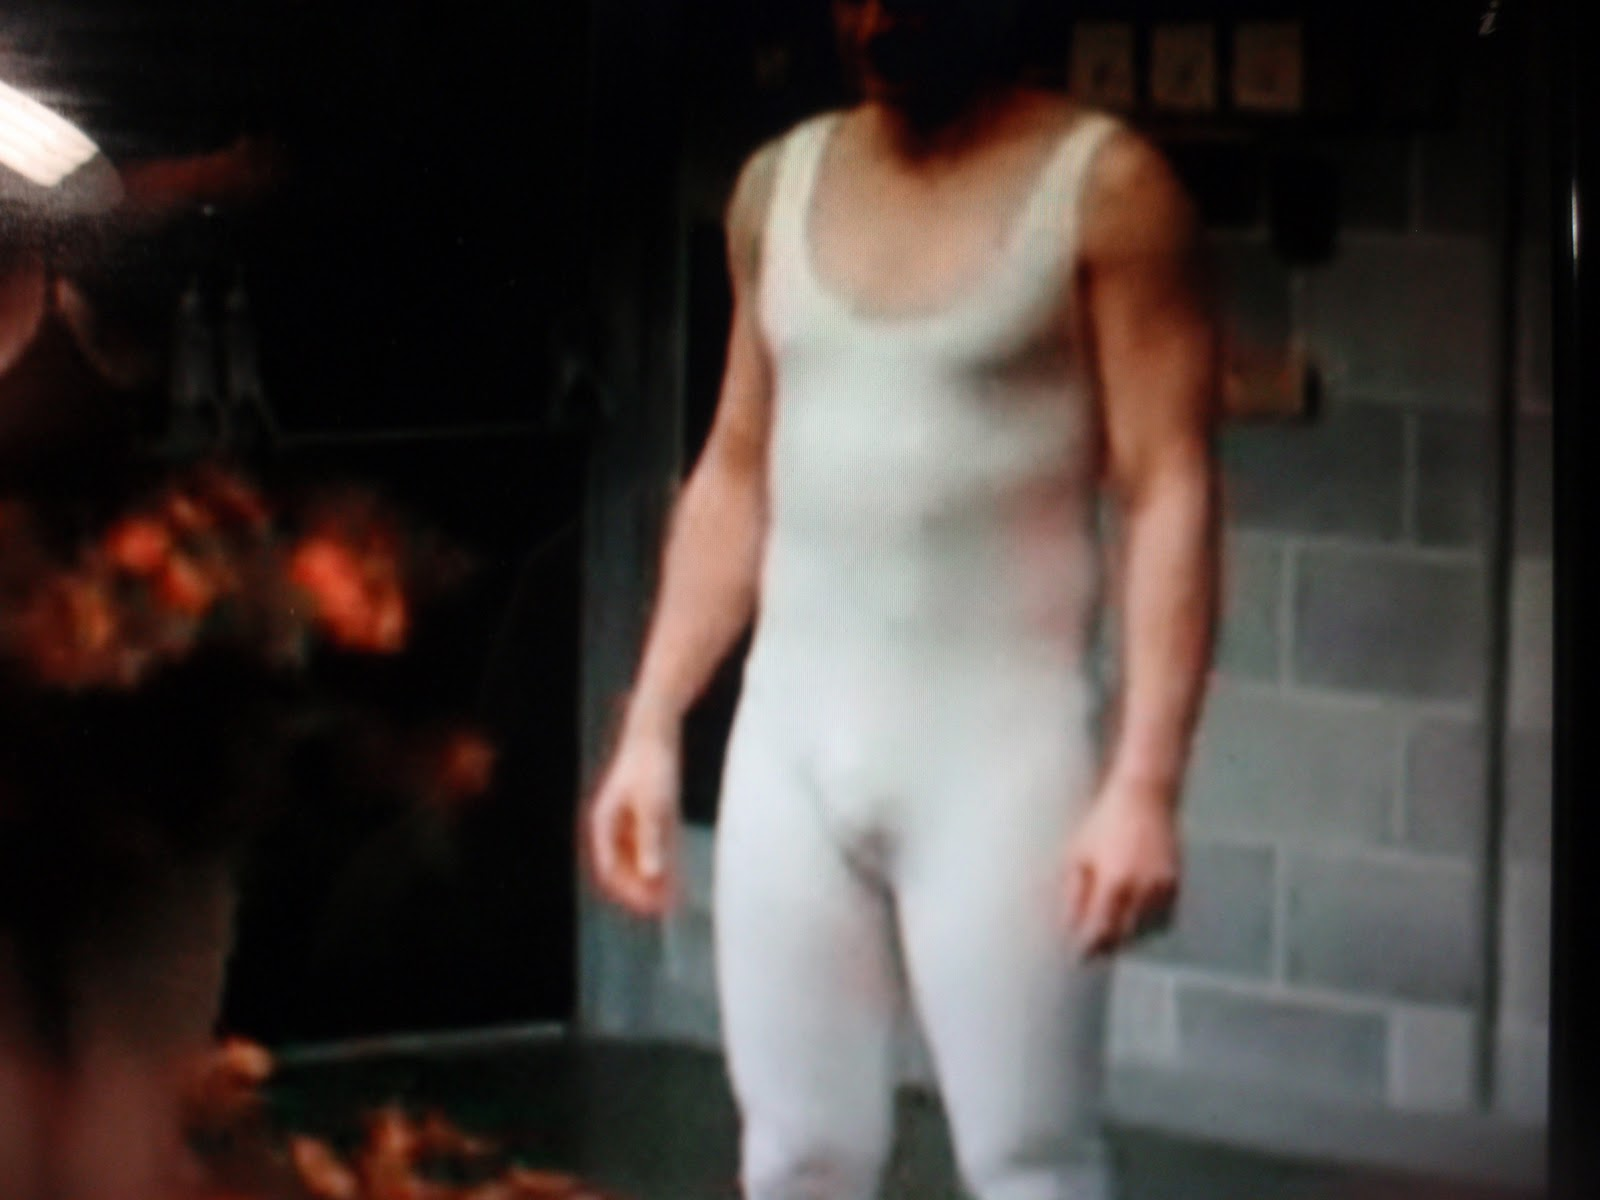 Ballet Tights Bulge http://eyesofstevieb.blogspot.com/2011/02/james-franco-in-ballet-tights.html